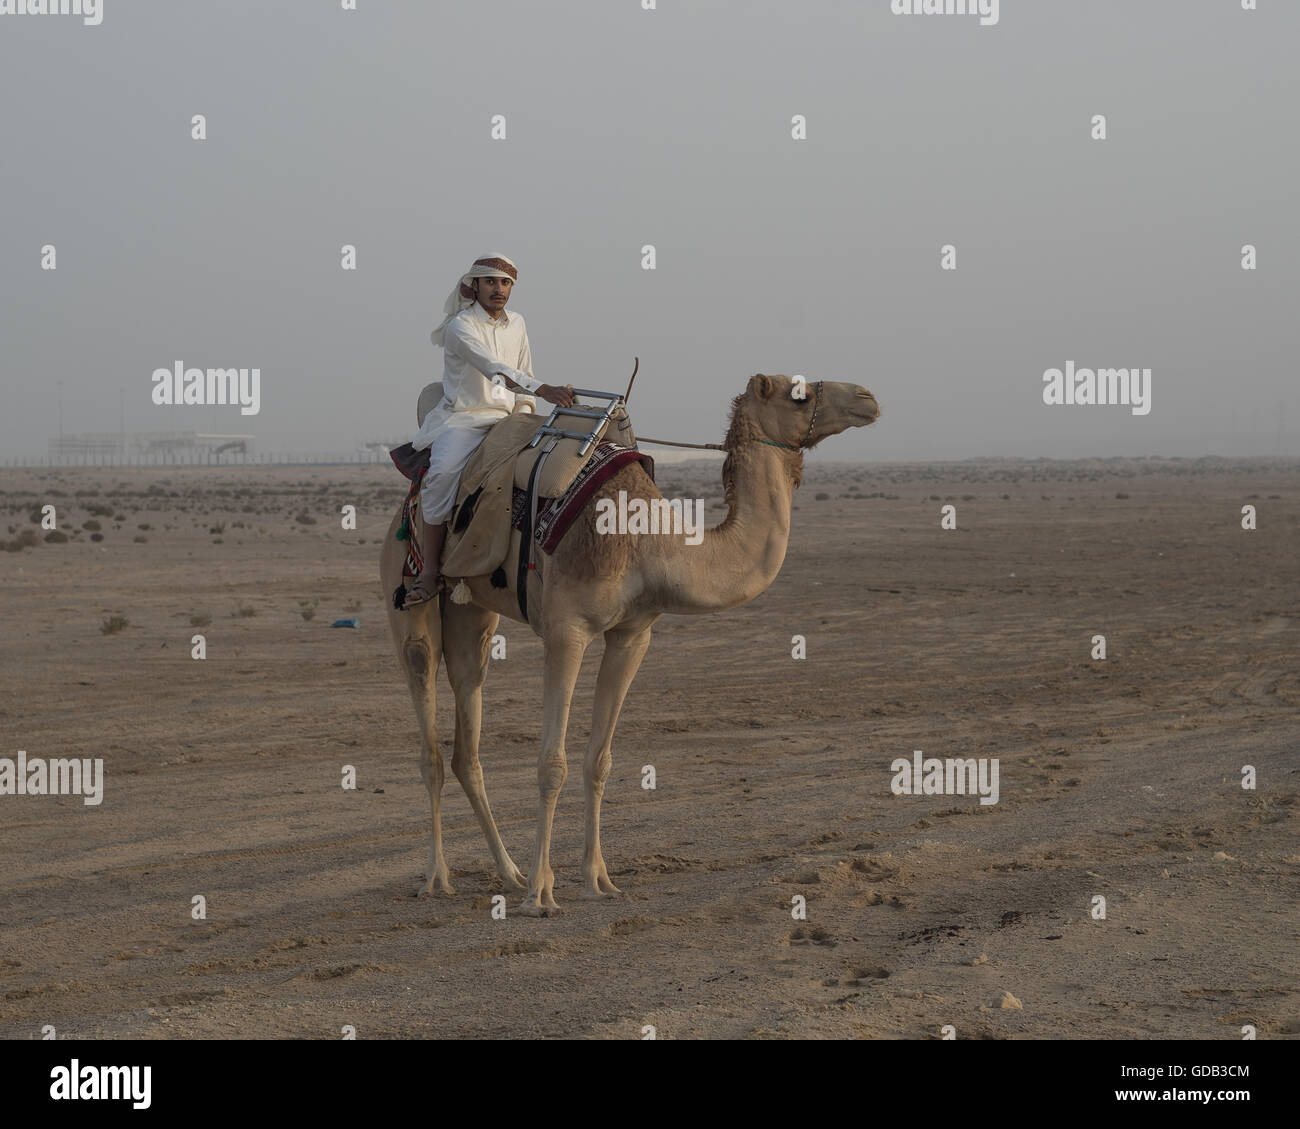 An Arab man mounted on a camel prepares for the day's hunt during the Al Galayel Hunting Festival in Qatar. - Stock Image